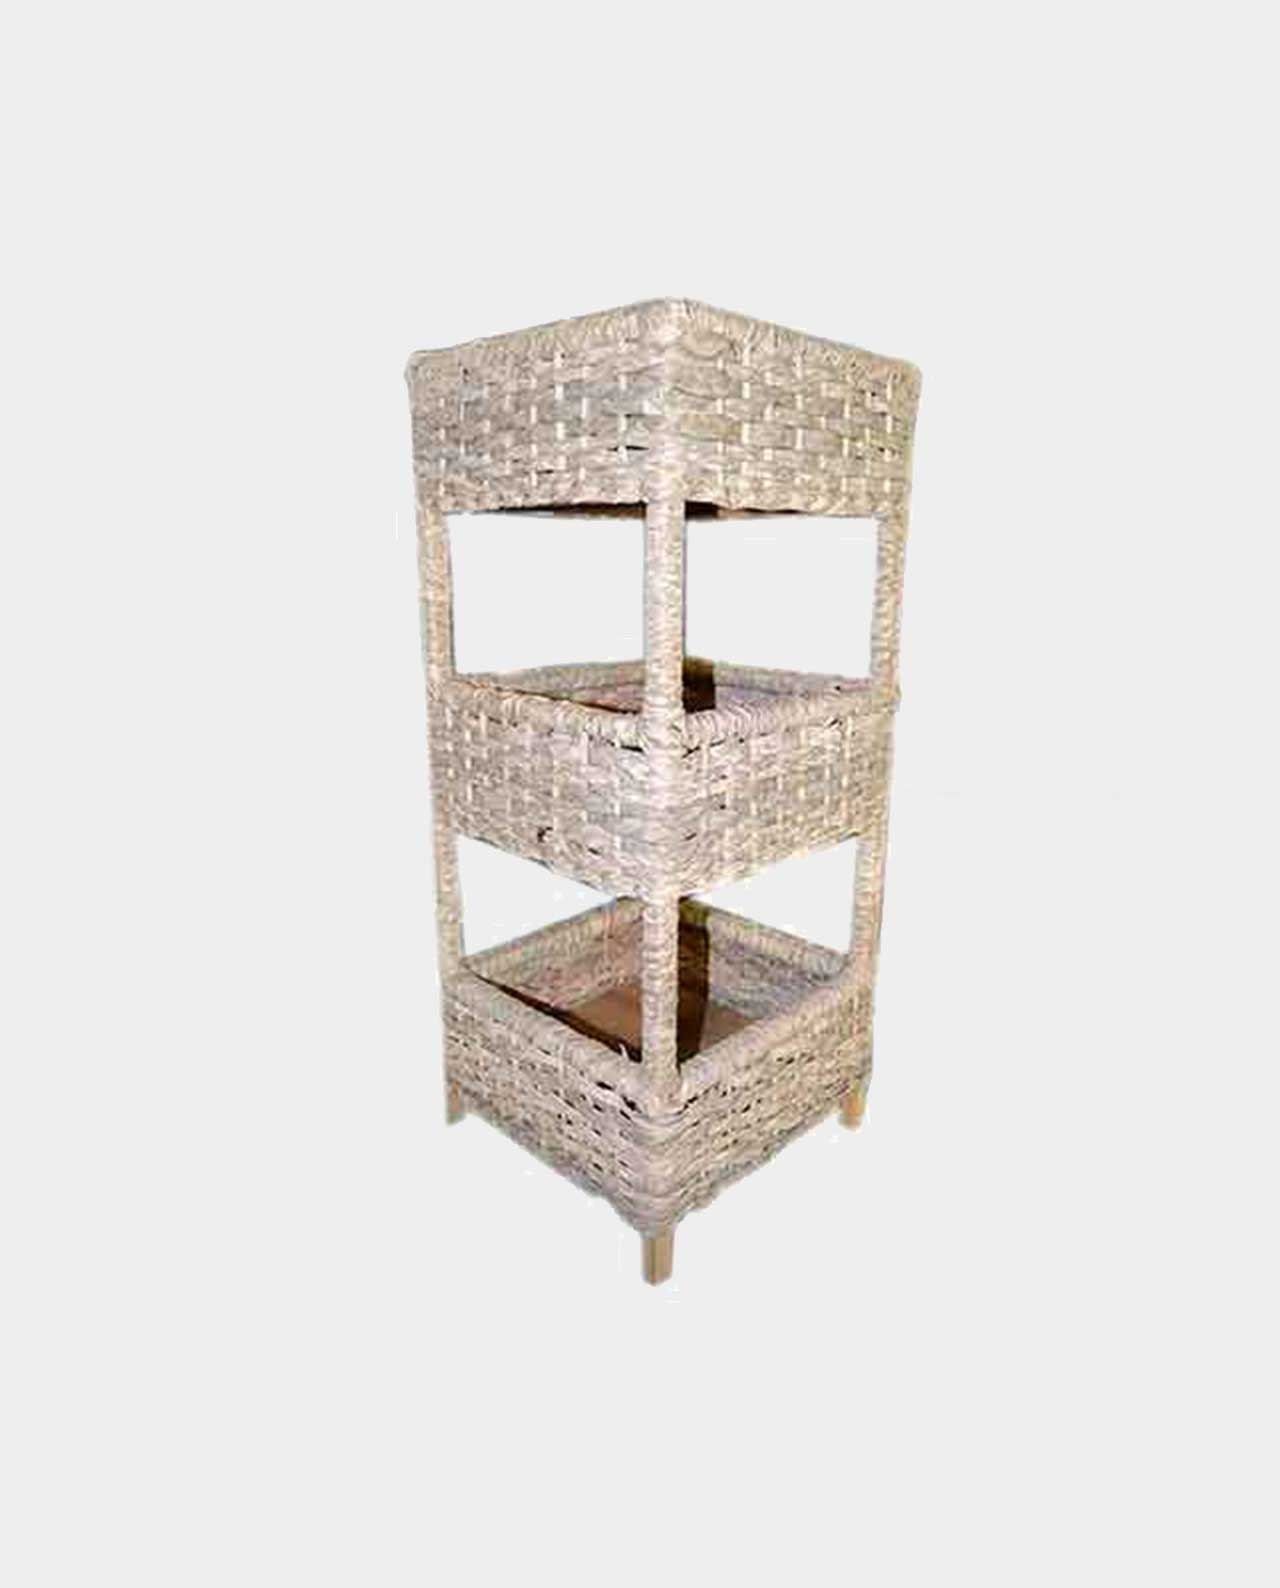 A Natural Large Tiered Wood & wicker Crate Stand Handmade Of wicker 80x36 cm